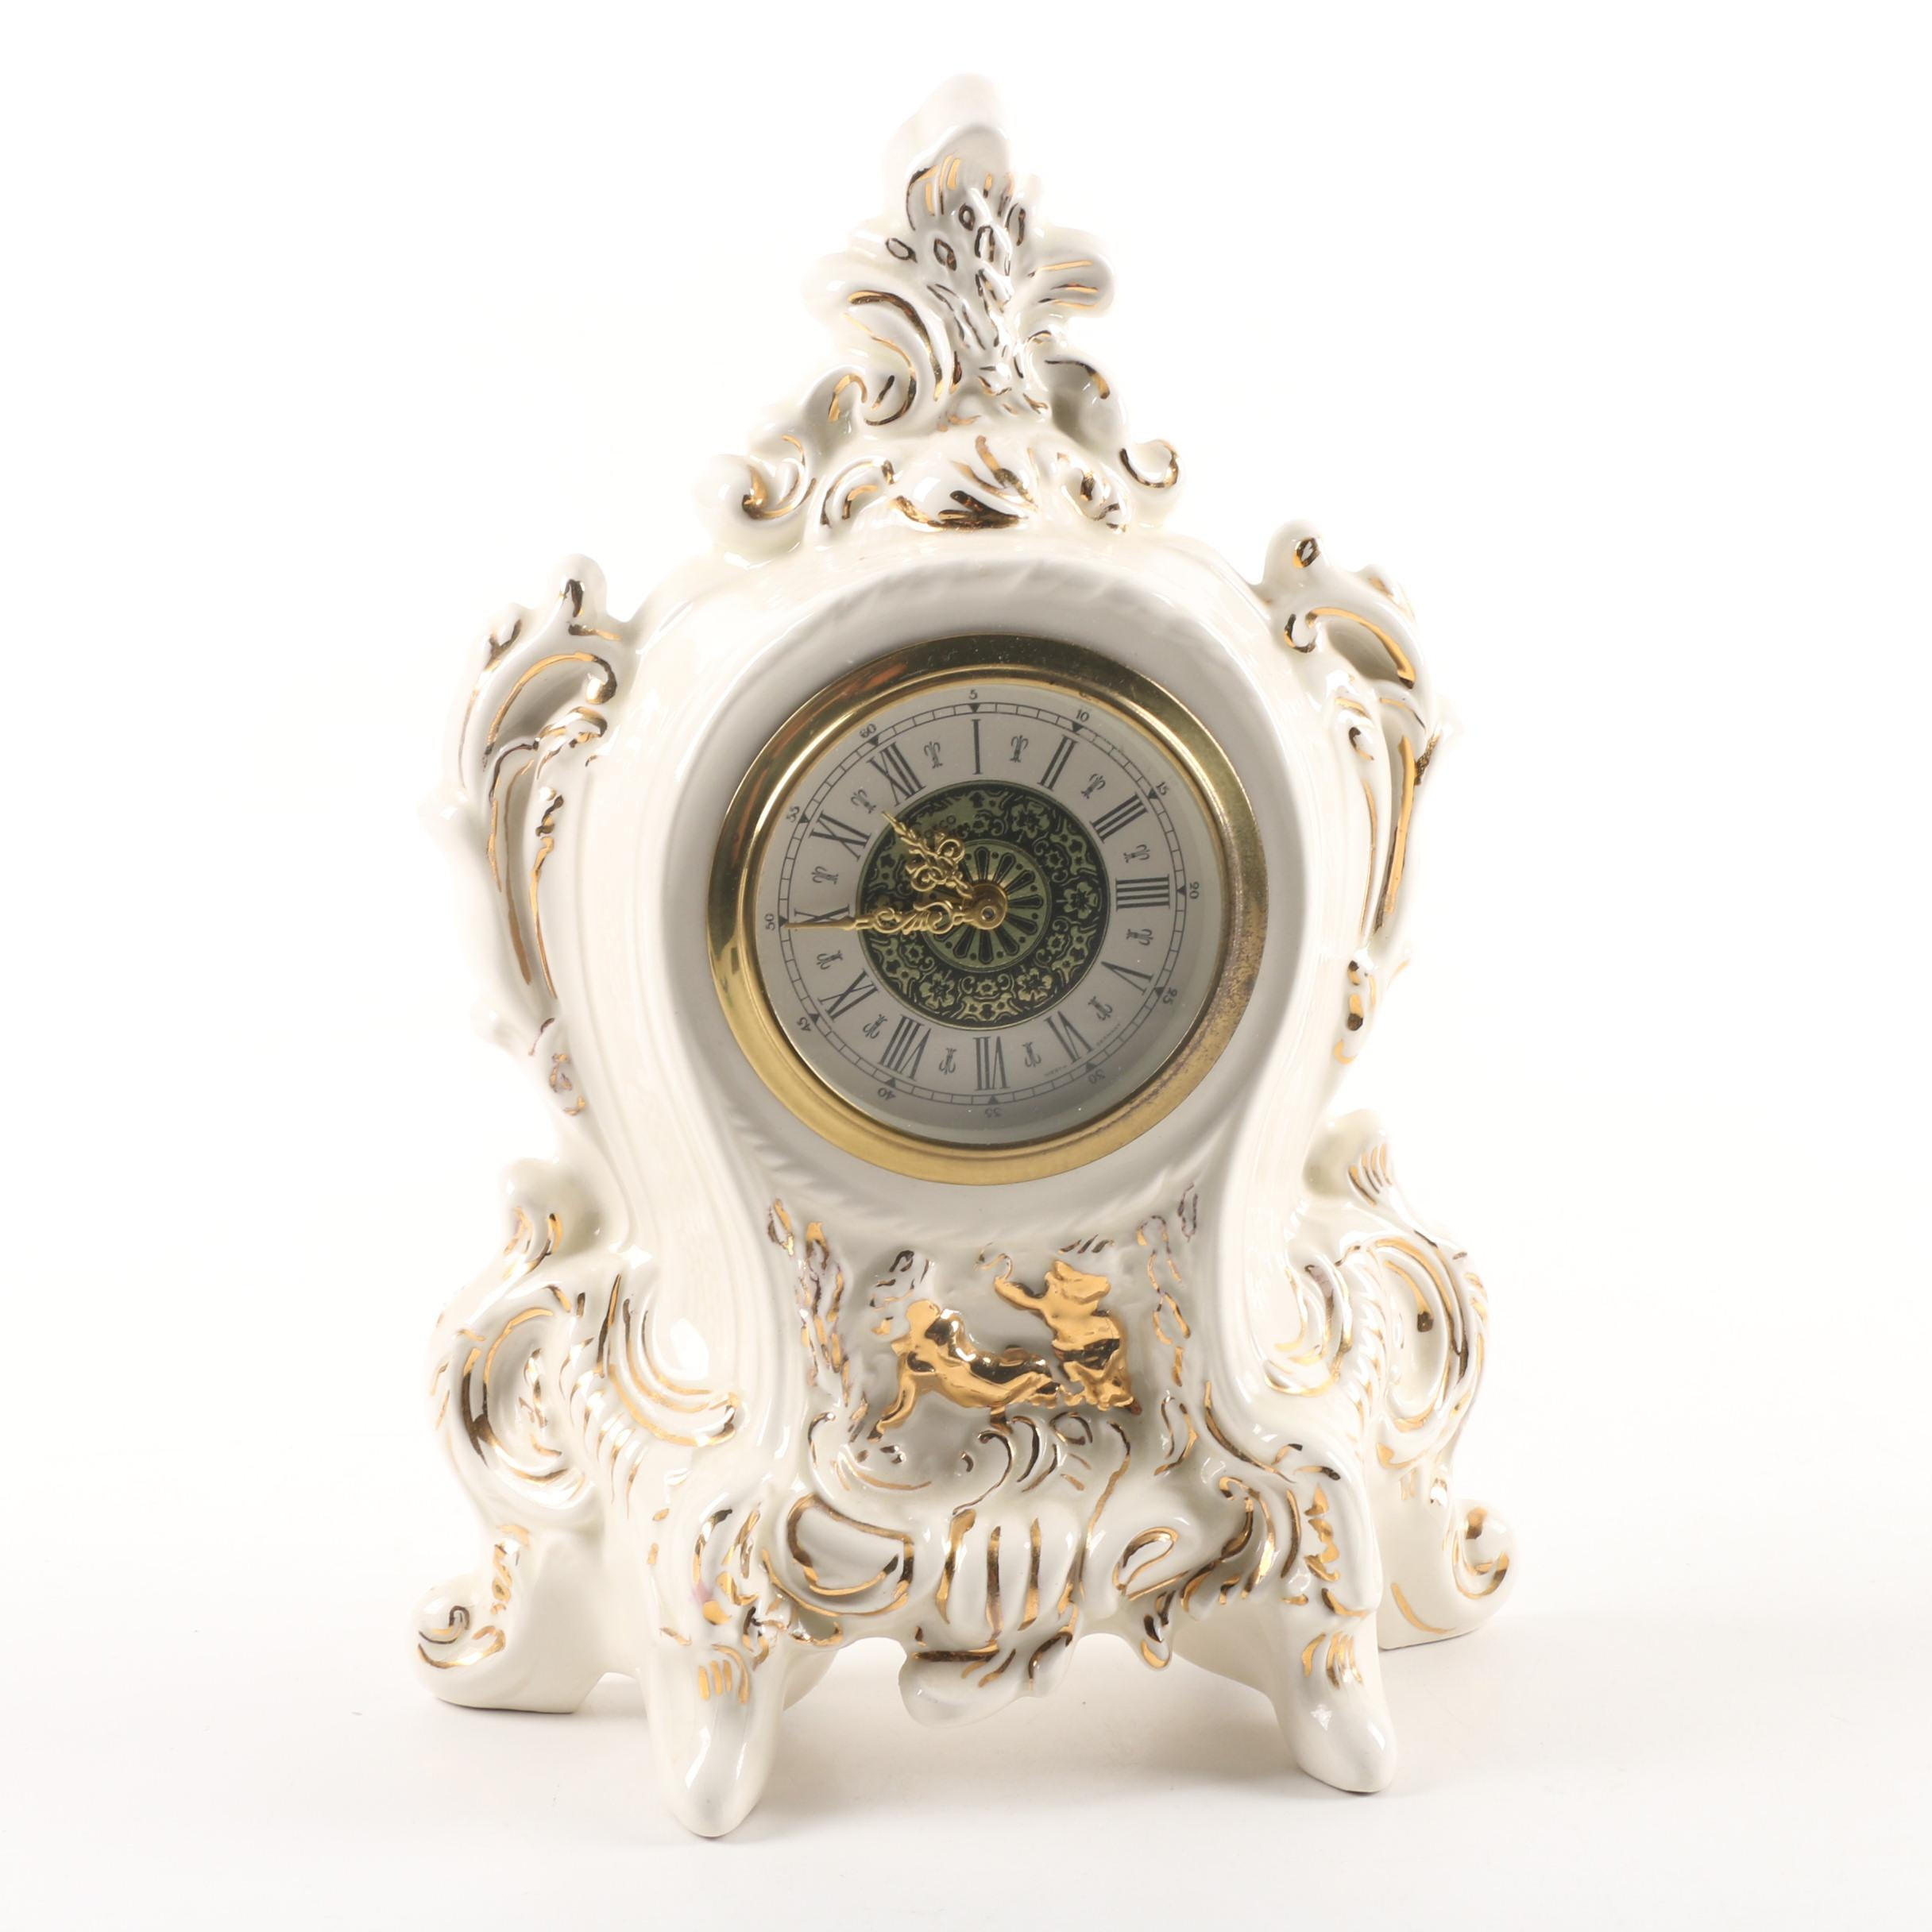 Vintage West German Porcelain Mantel Clock Attributed to Norco